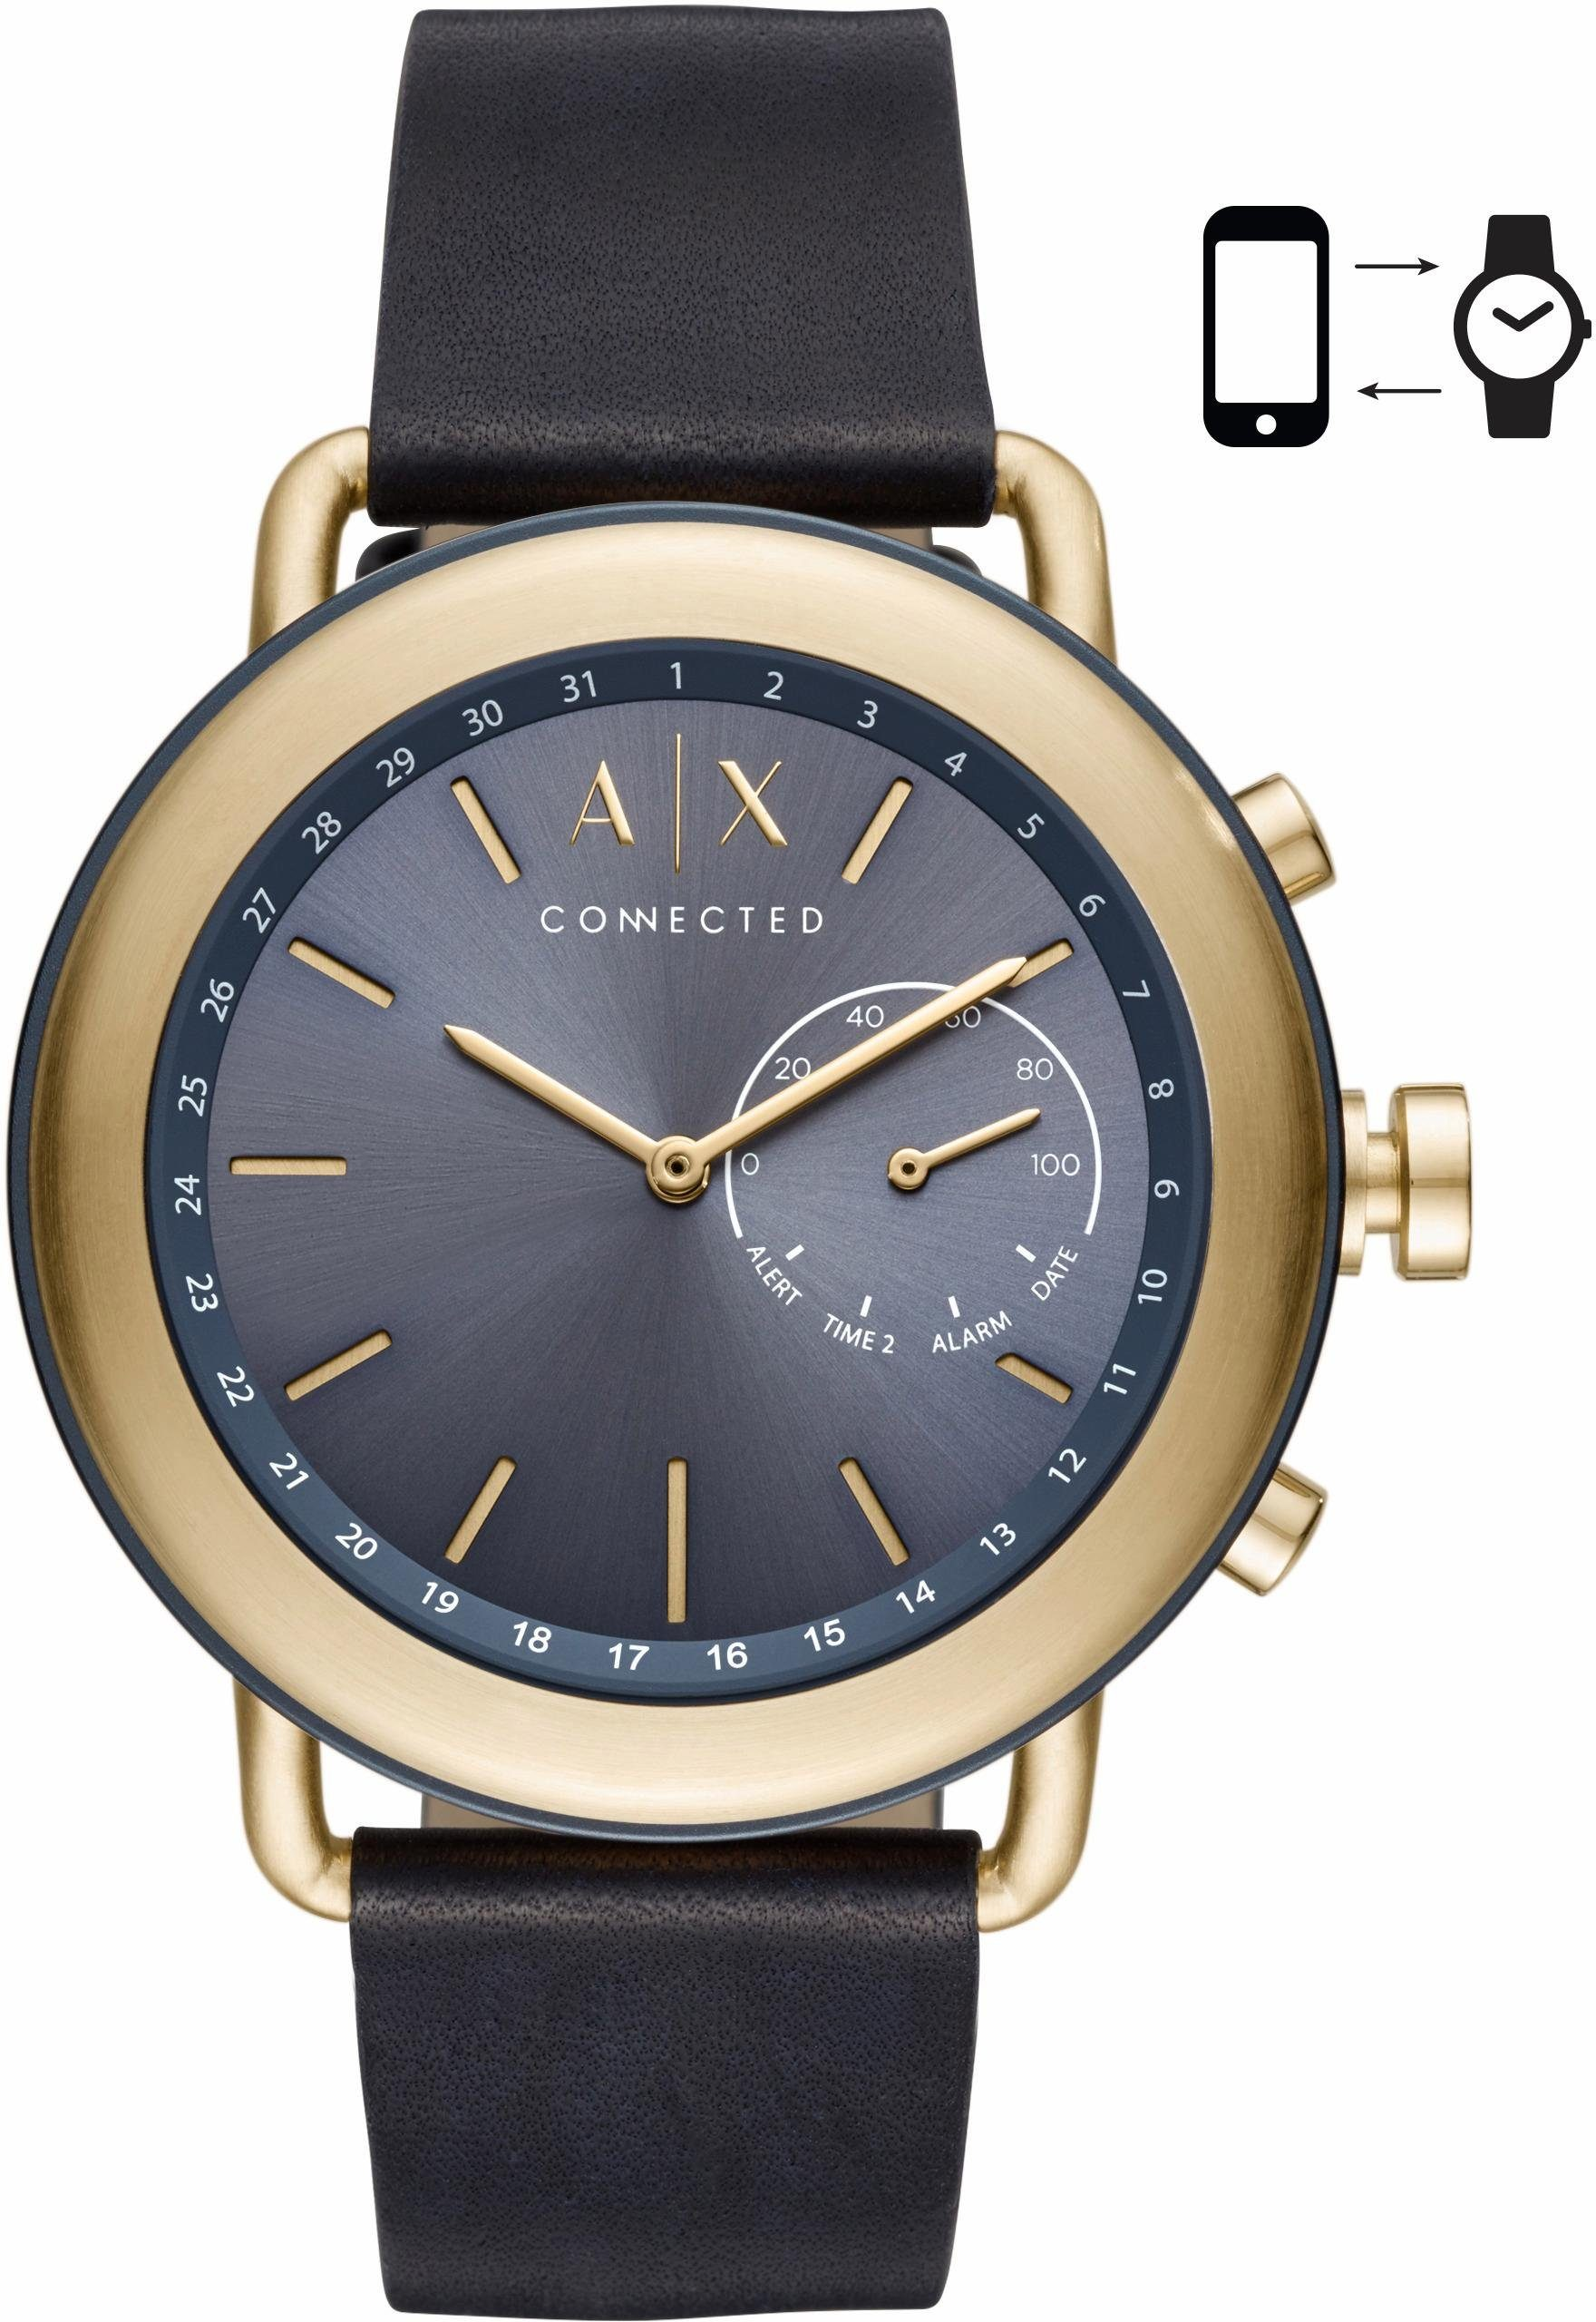 Armani Exchange Connected AXT1023 Smartwatch (Android Wear)